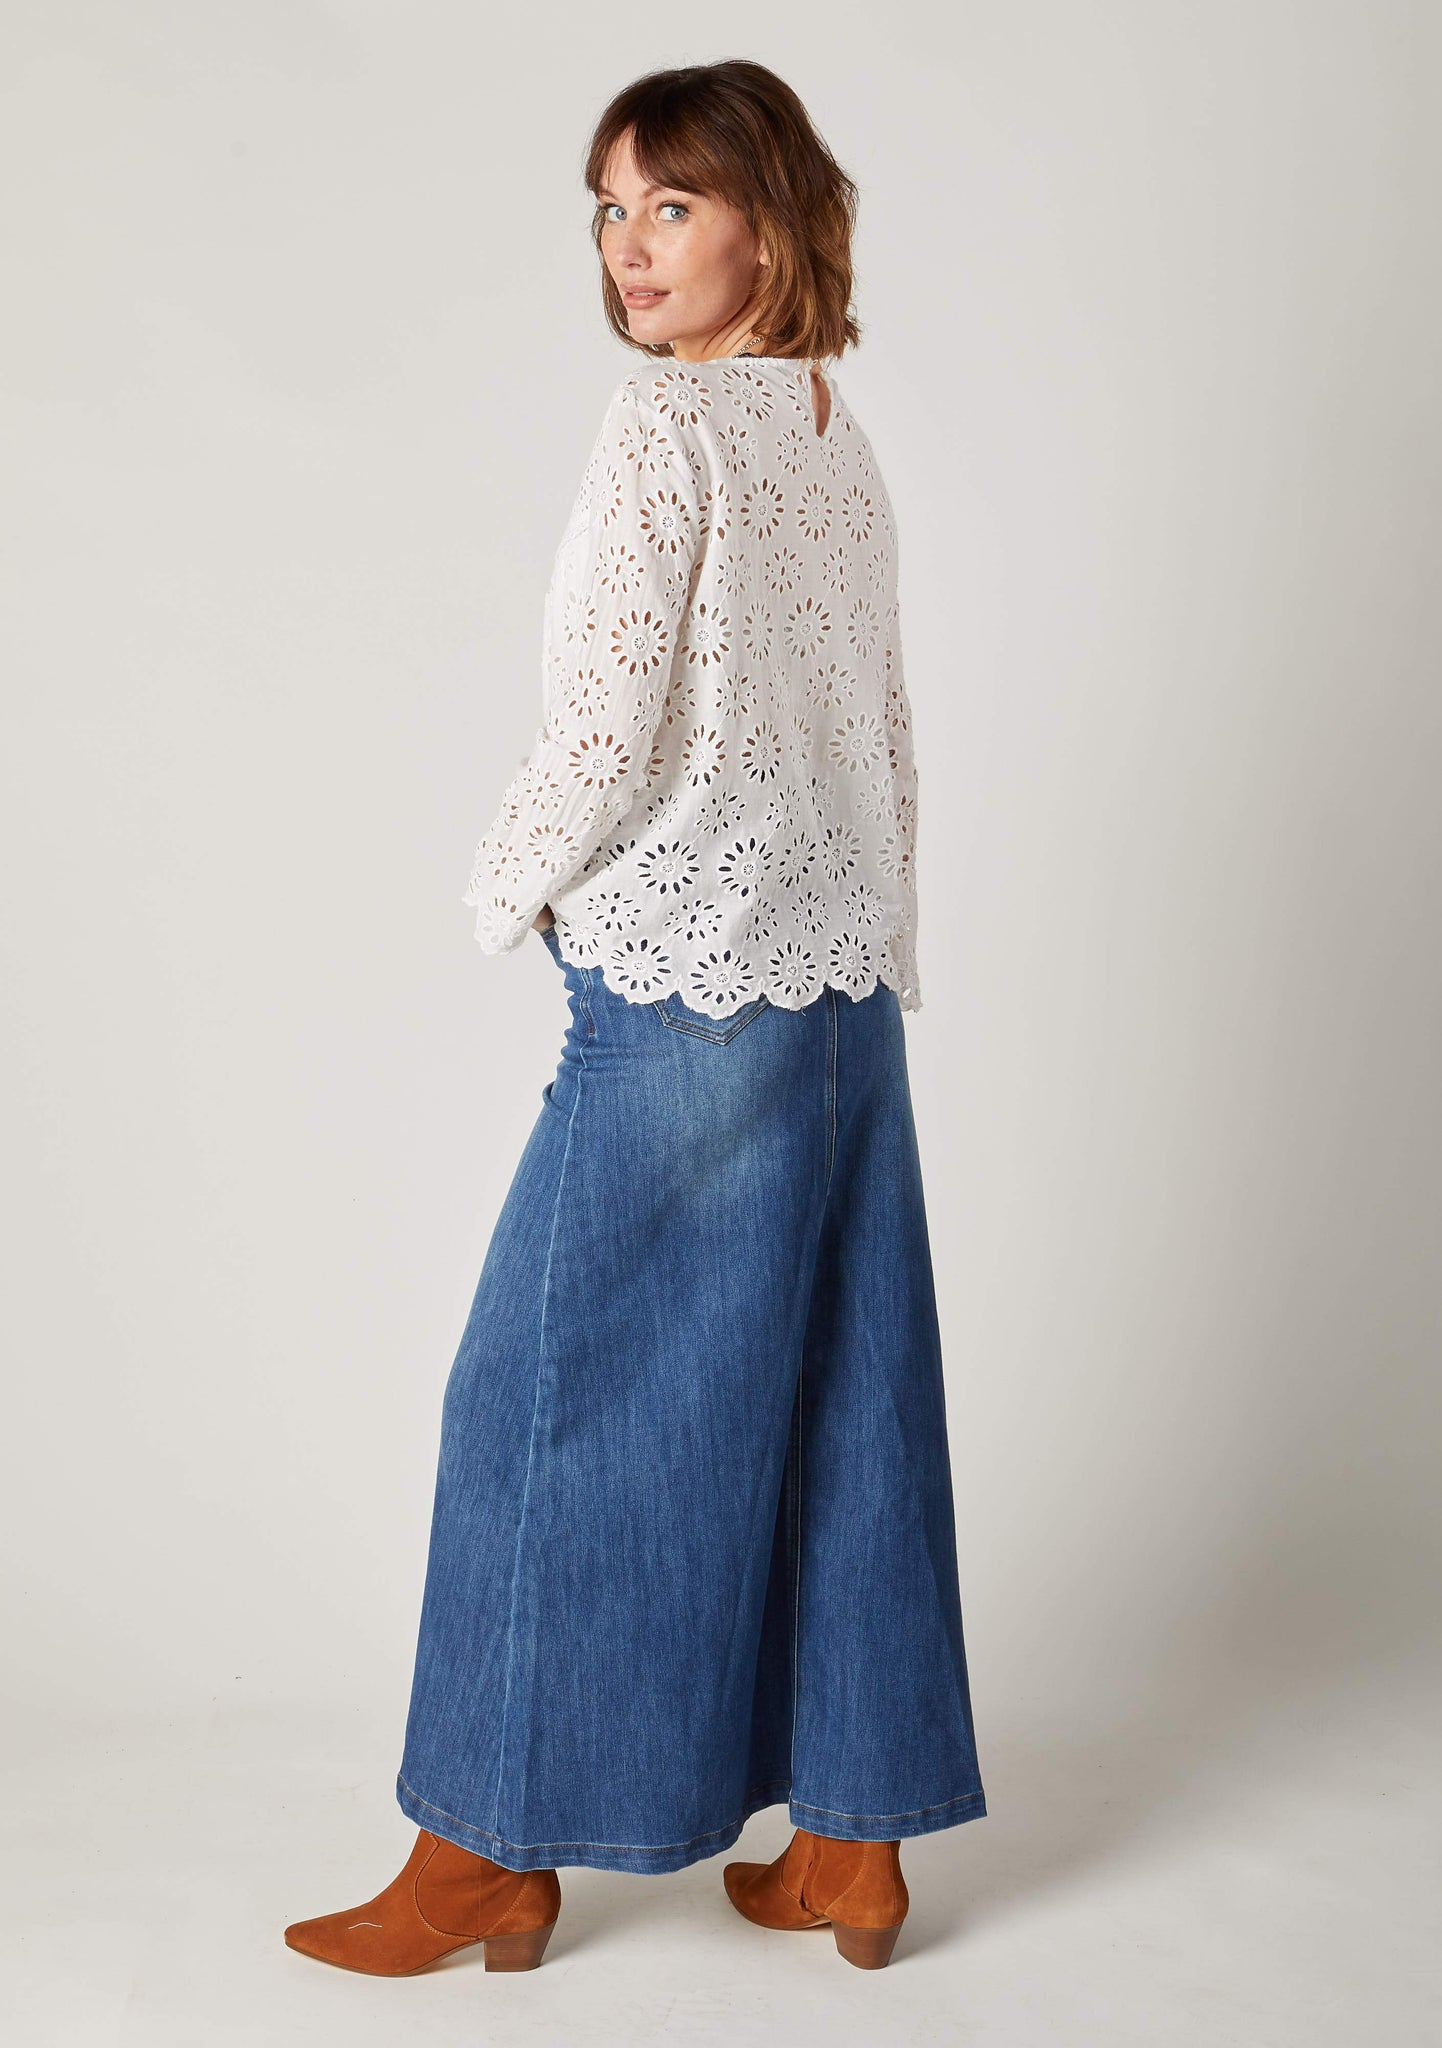 Back View of Andrea style full length modest blue denim skirt without slit